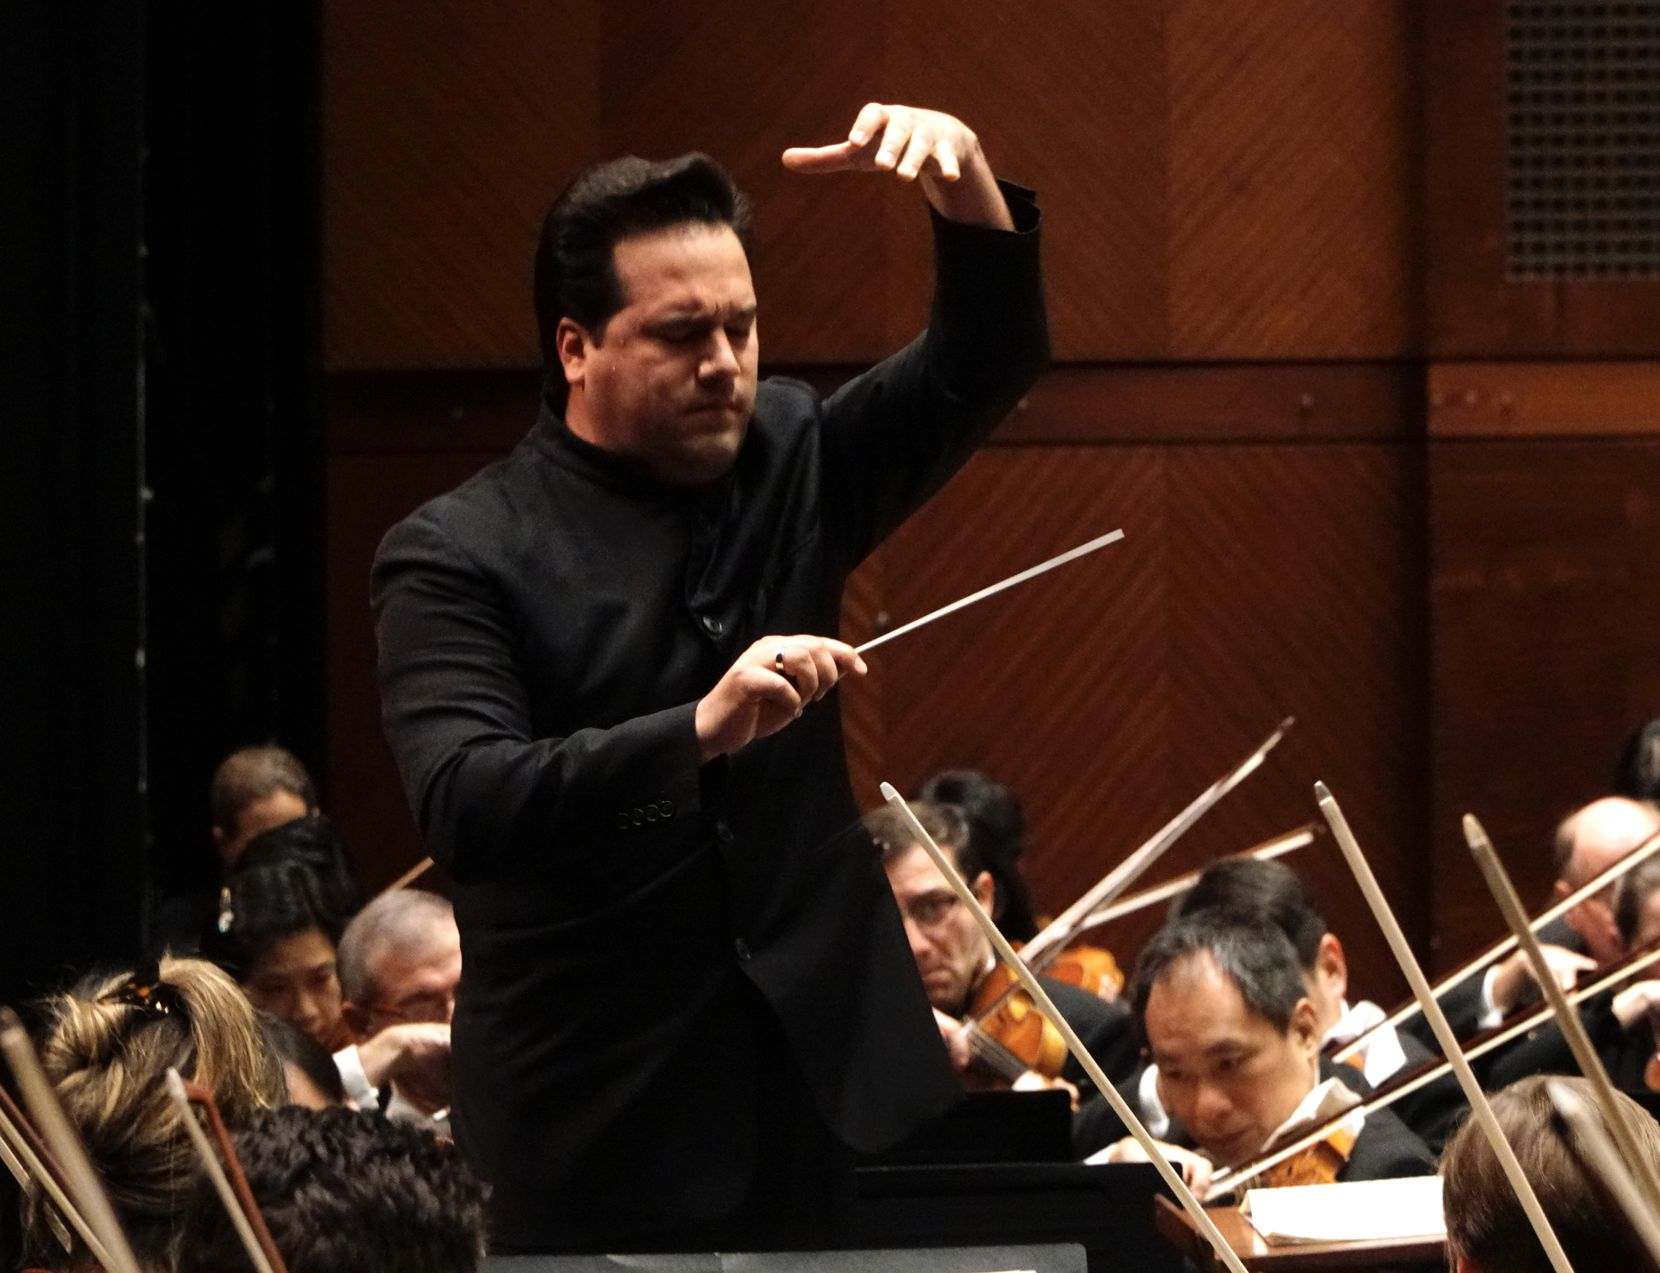 Robert Trevino leads the Fort Worth Symphony Orchestra at Bass Performance Hall in Fort Worth on Feb. 28, 2020. Trevino grew up listening to the FWSO.